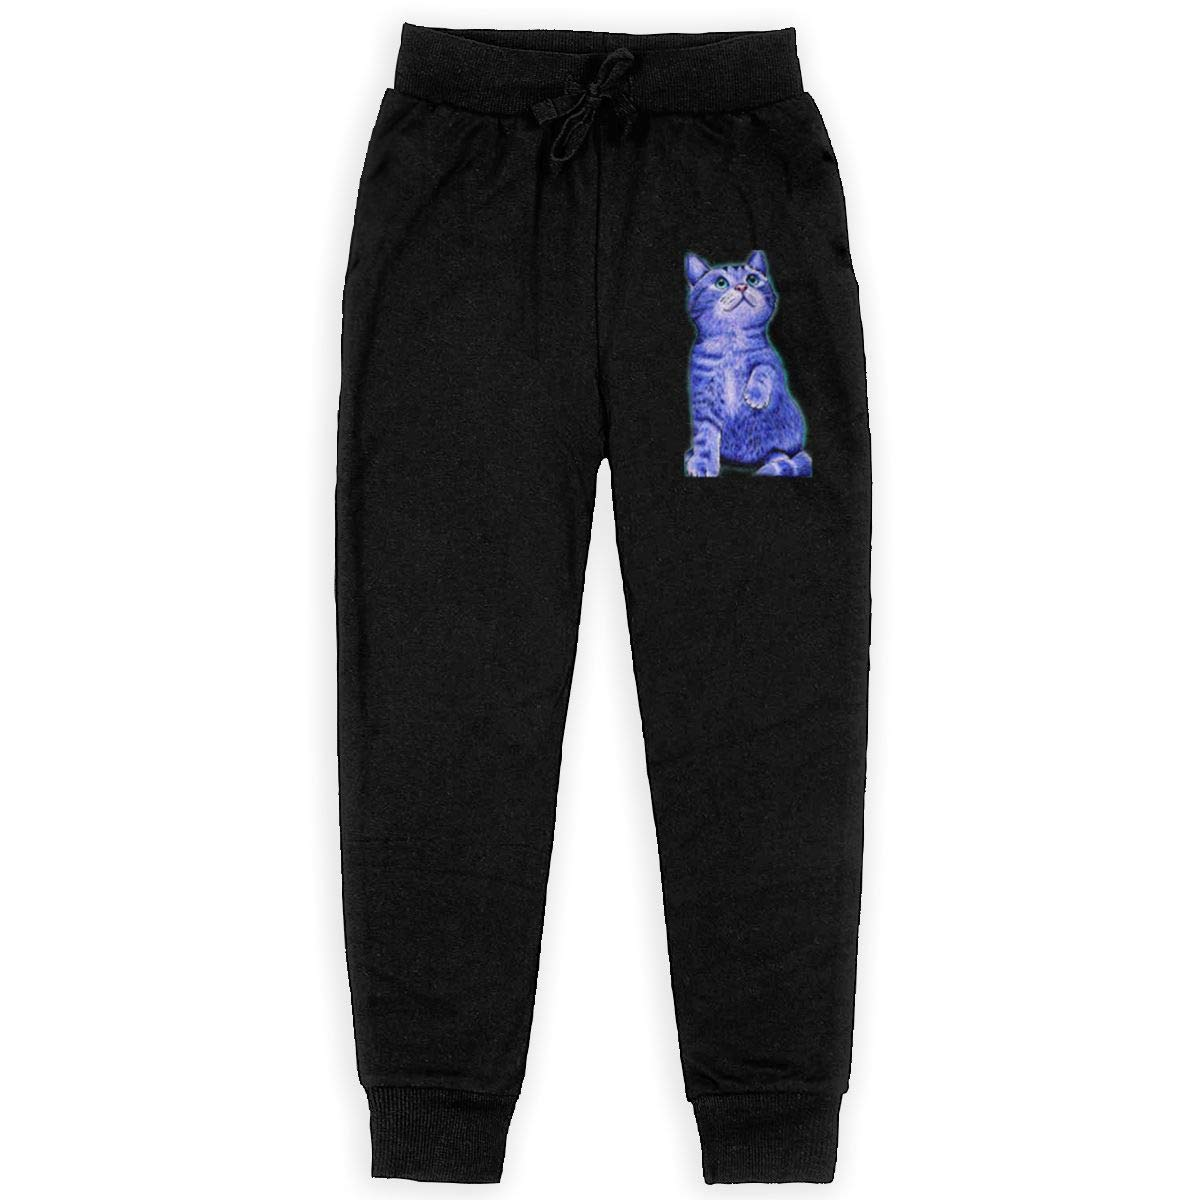 Shine Cat Boys Athletic Smart Fleece Pant Youth Soft and Cozy Sweatpants